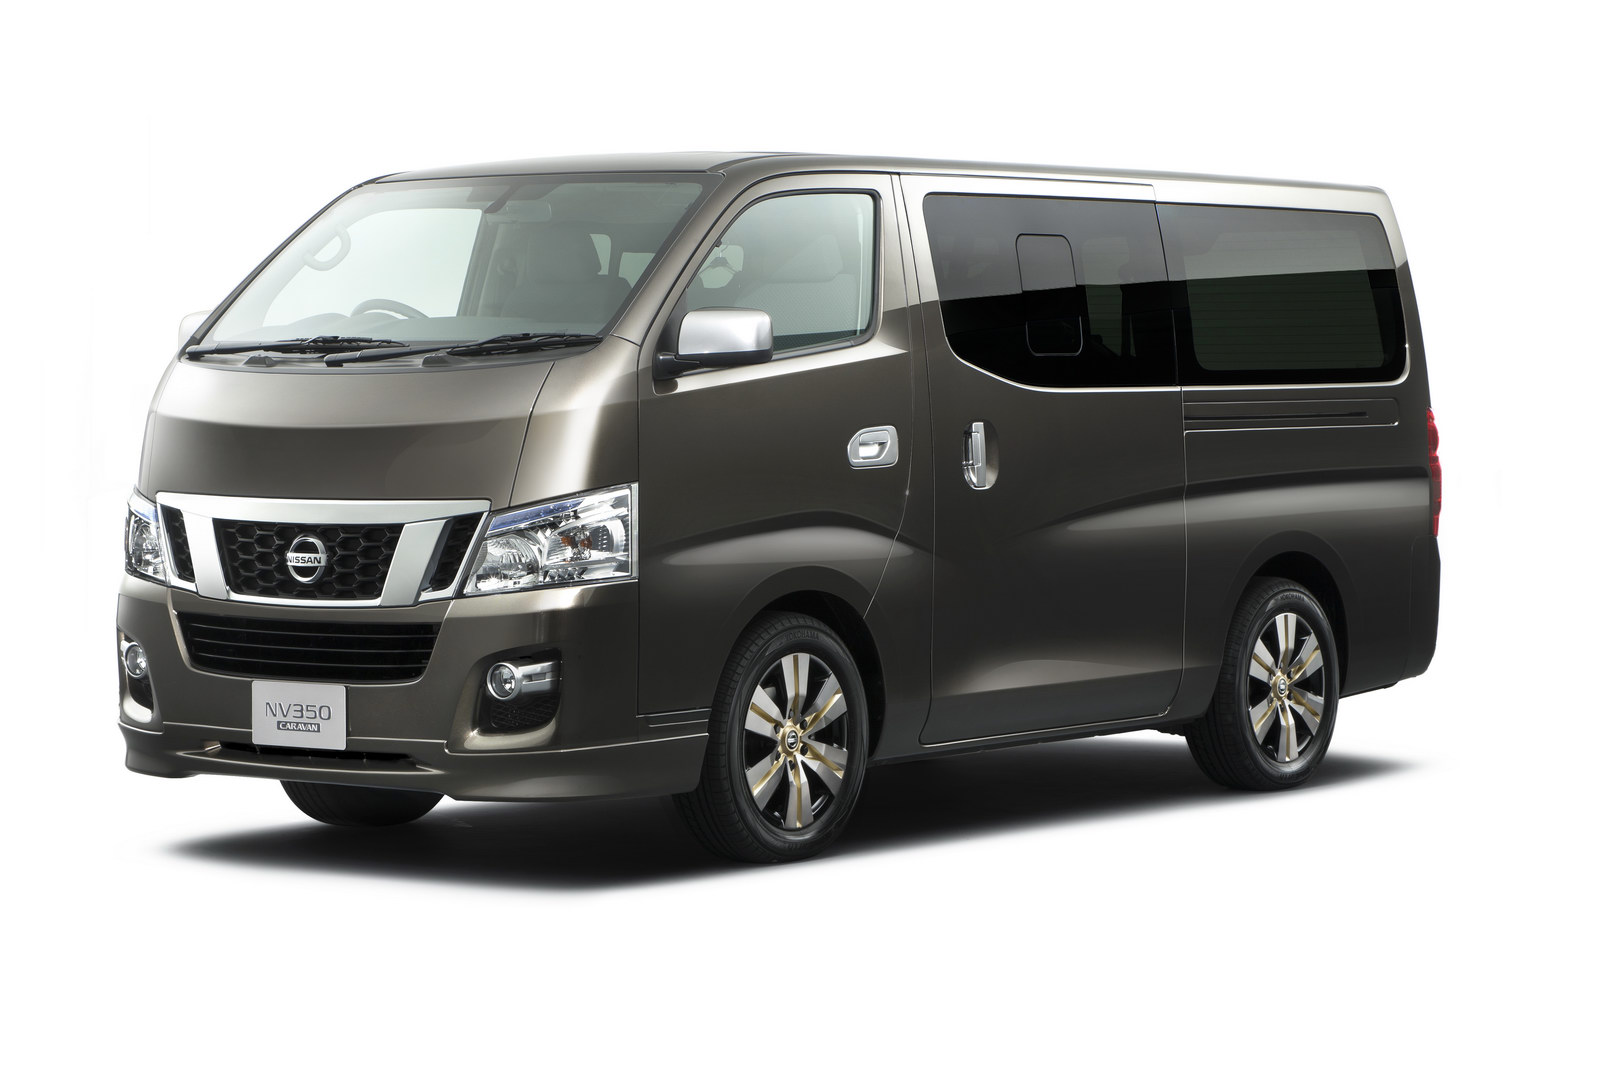 Nissan NV350 Caravan 2012 - now Minivan #7